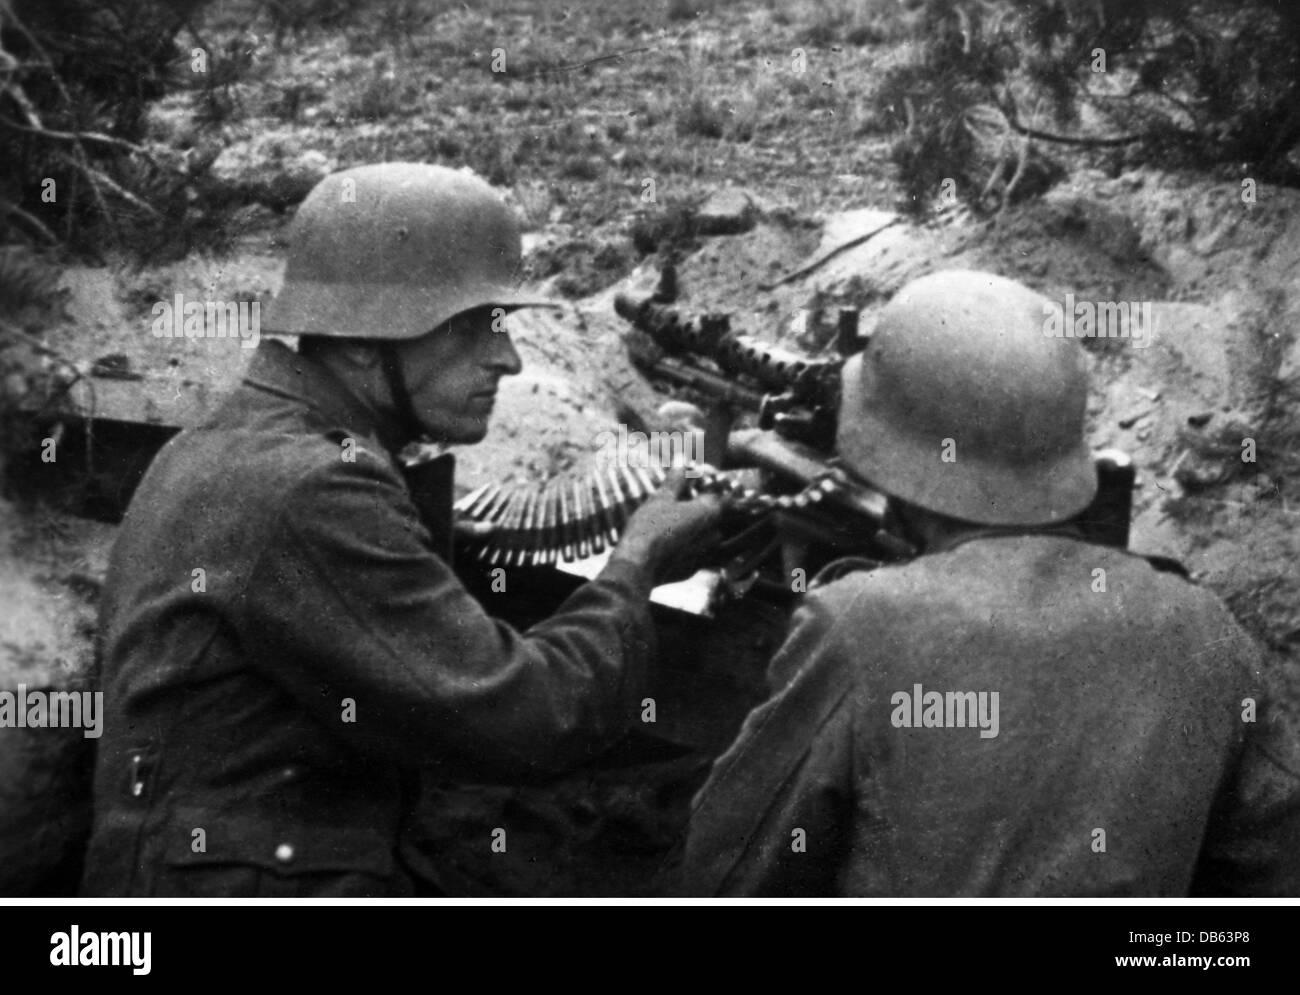 Operation Barbarossa in Photos – Germany's Grand Assault on the Soviet Union